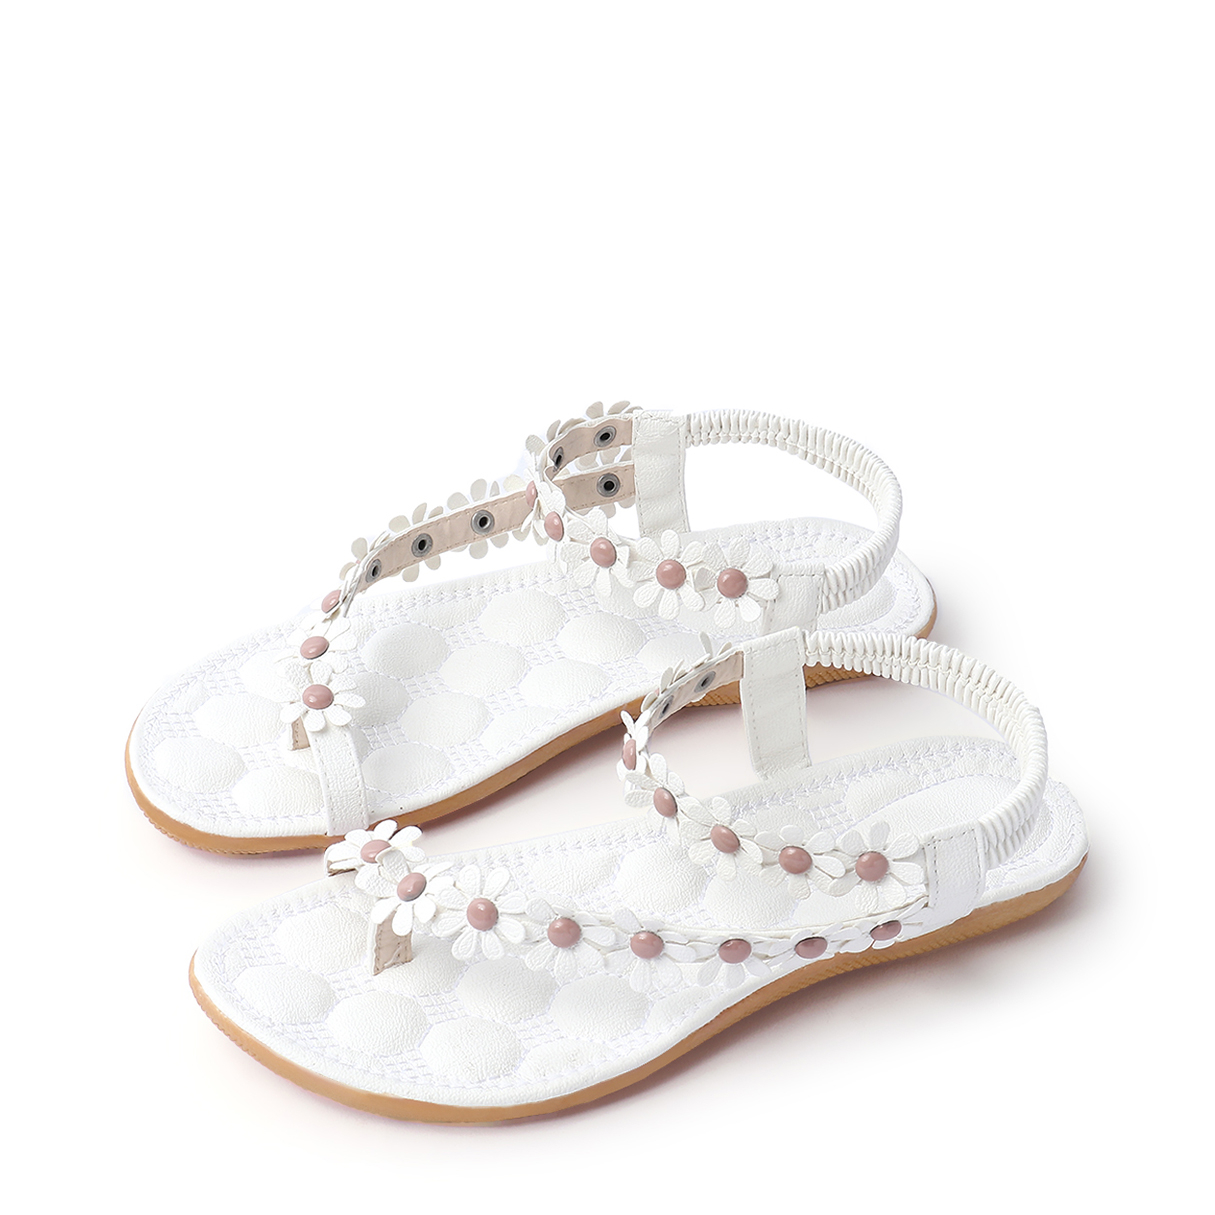 Floral Decoration Vocation Sandals in White